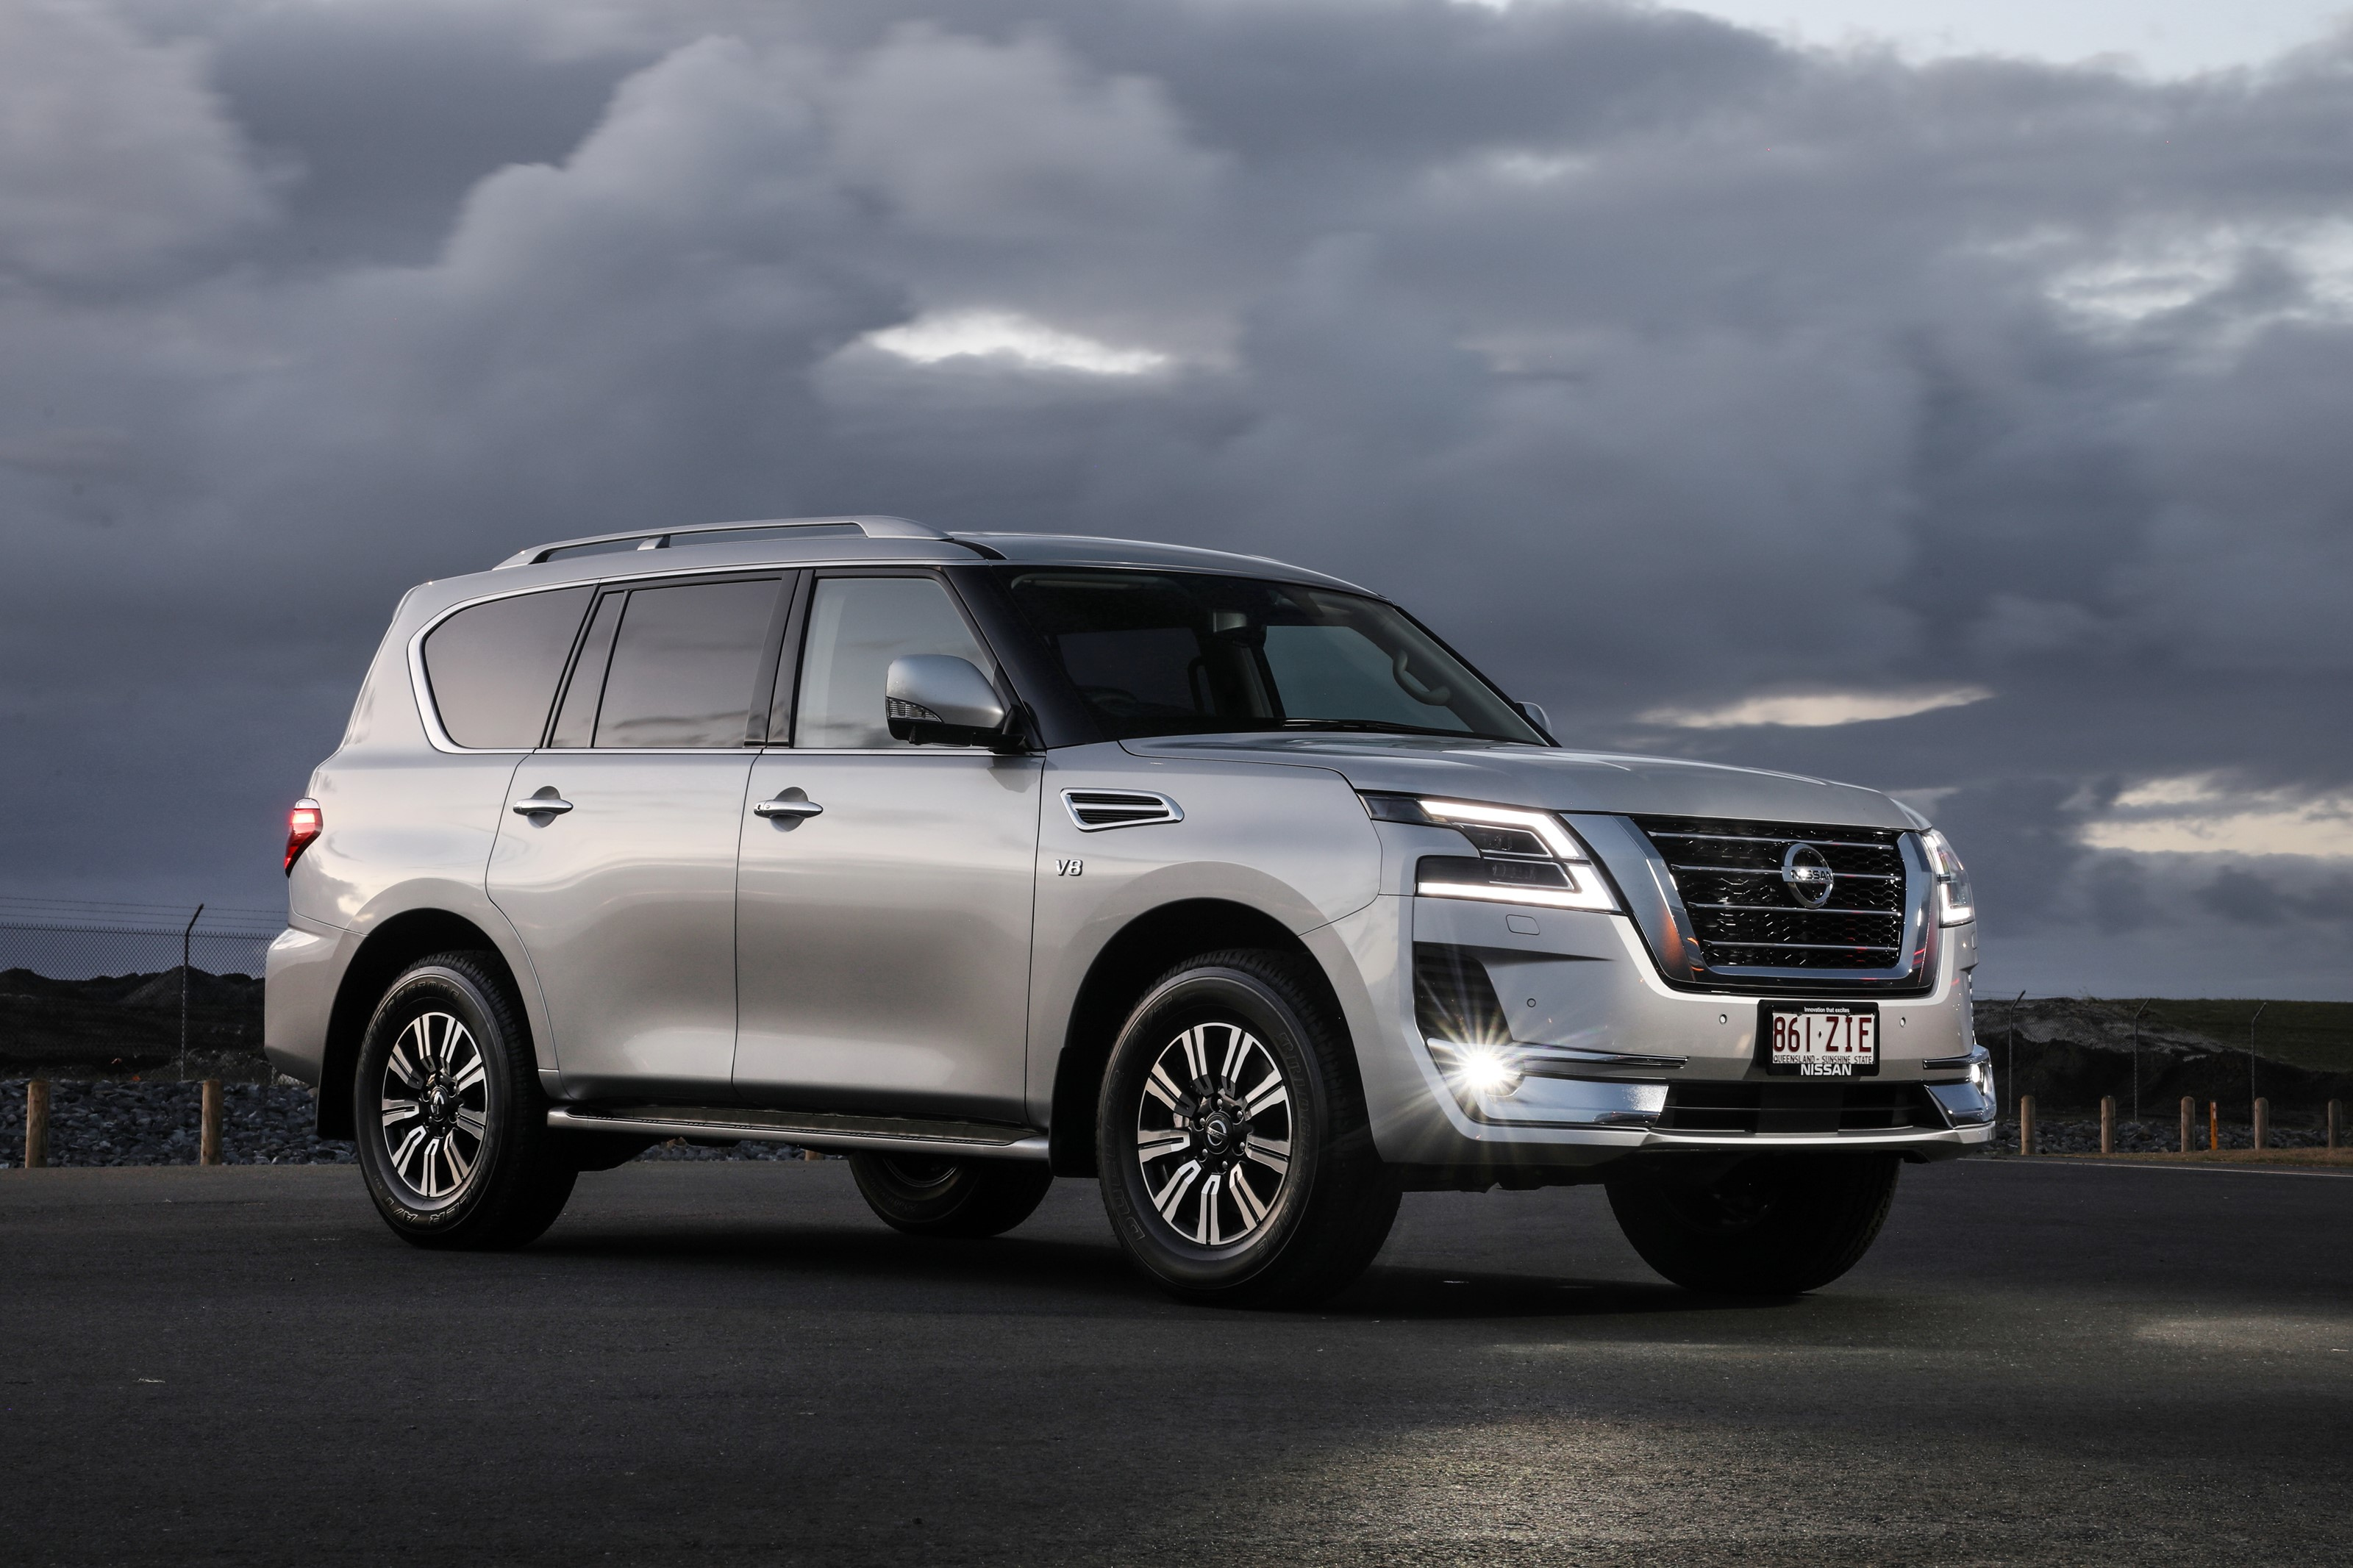 2020 Nissan Patrol Price and Review